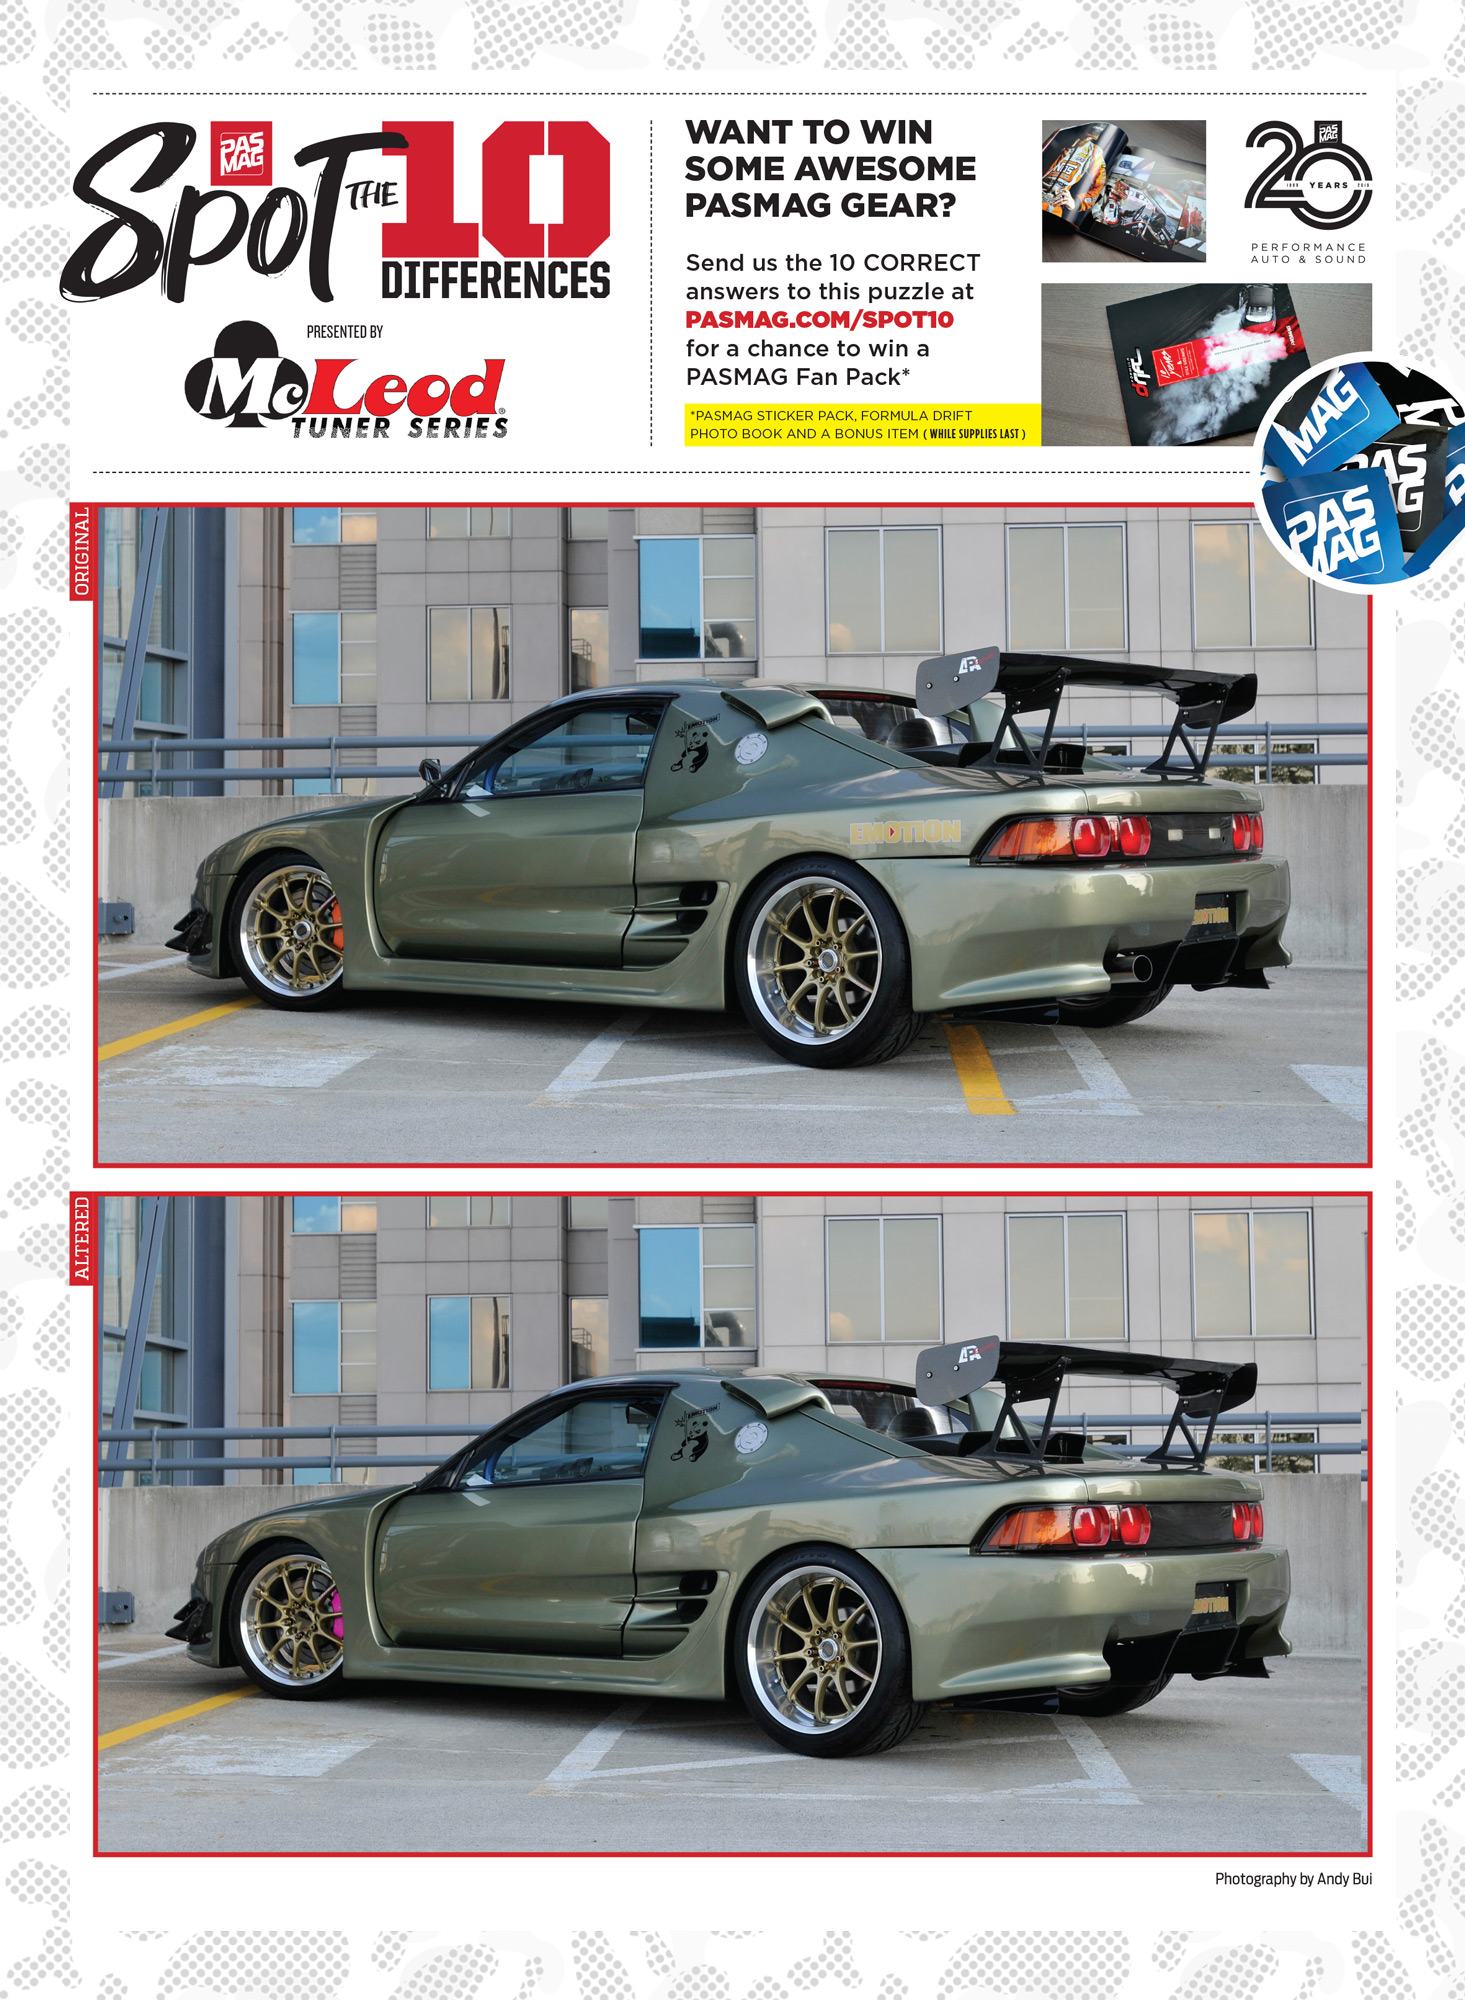 PASMAG Spot the Differences May 19 2020 Afrim Zeka 1991 Toyota MR2 pasmag